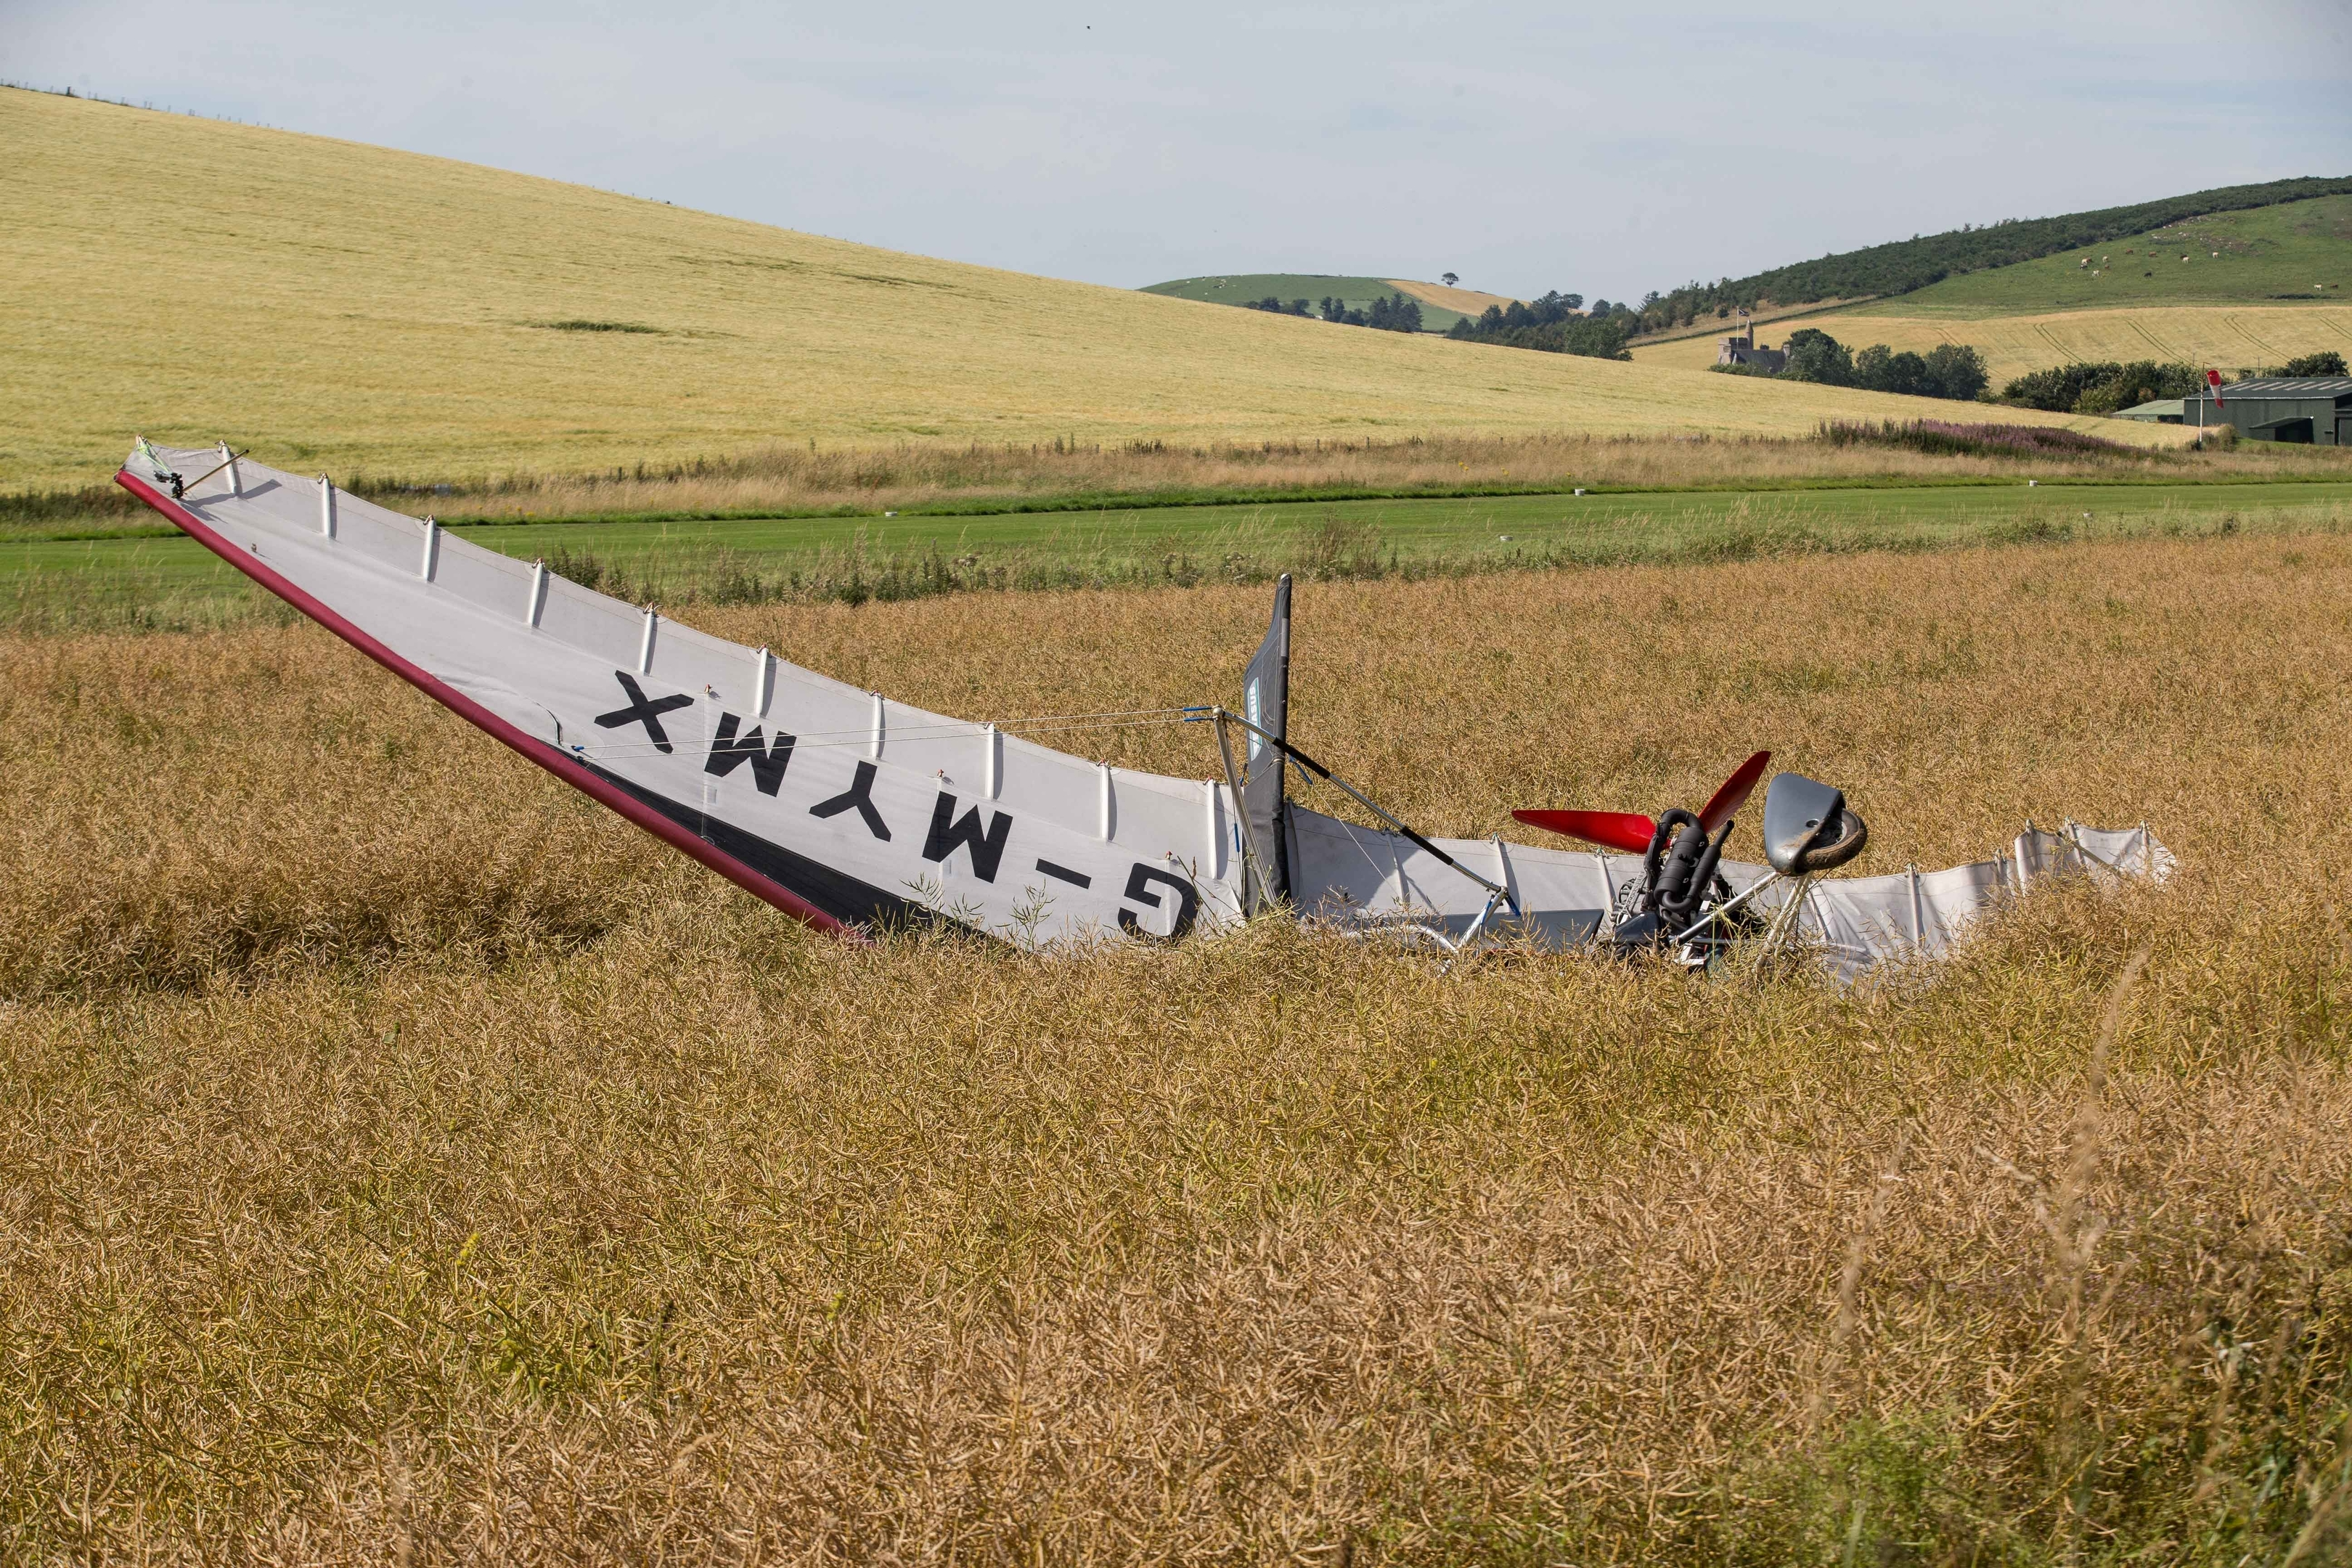 A man has been taken to hospital with potentially serious injuries after a microlight crash in Aberdeenshire.